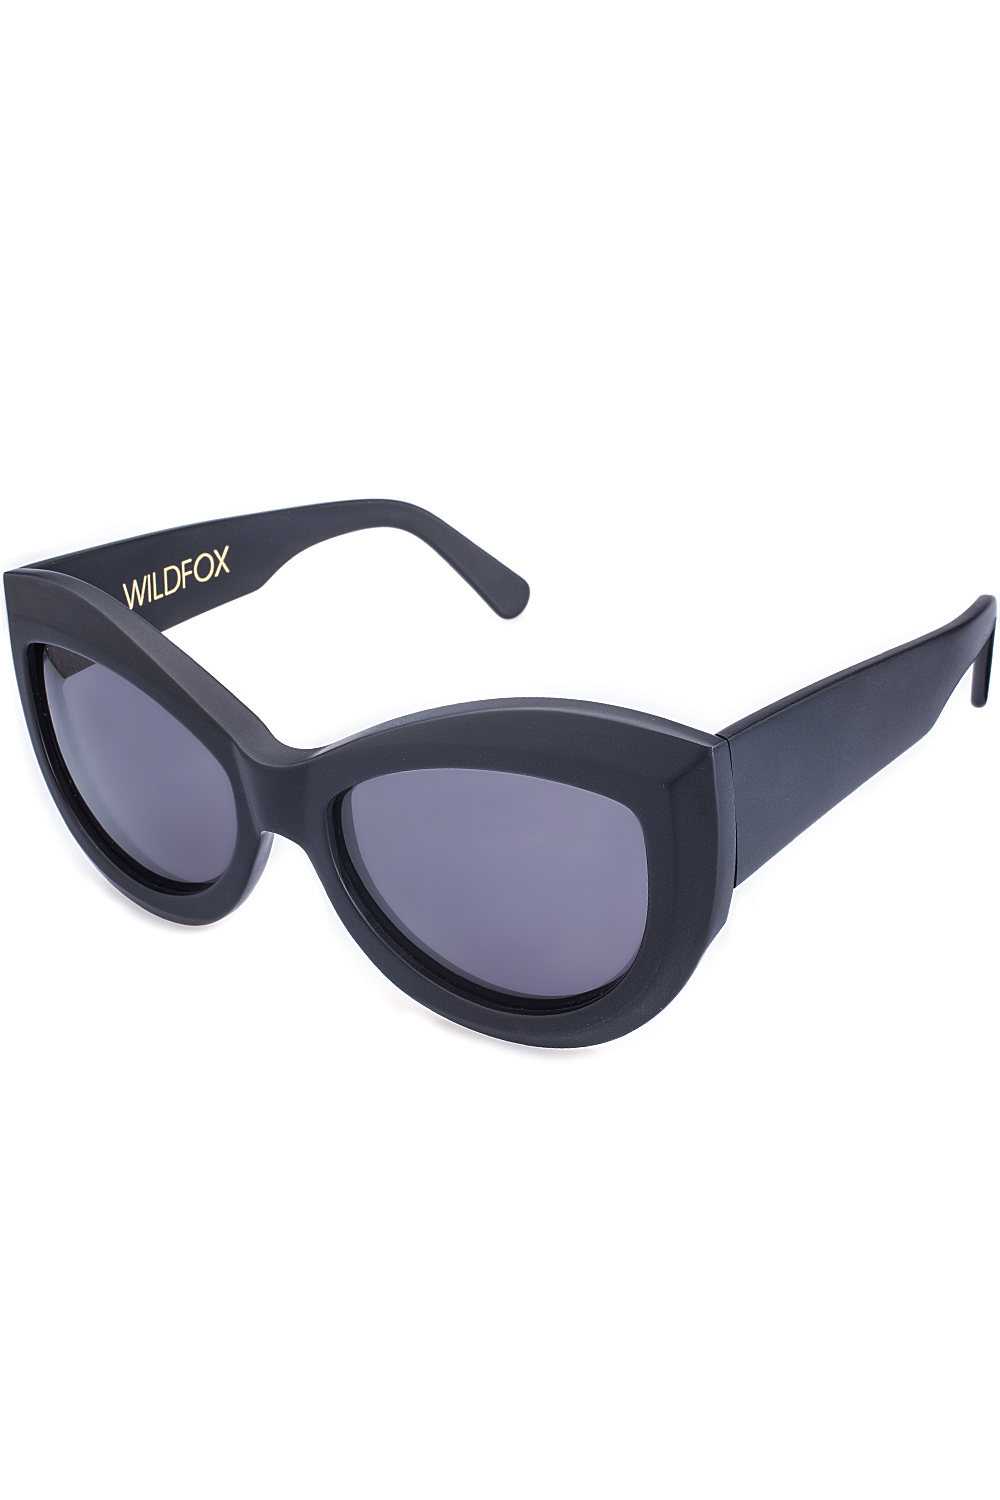 3e9d52426a Wildfox The Kitten Sunglasses Matte Black